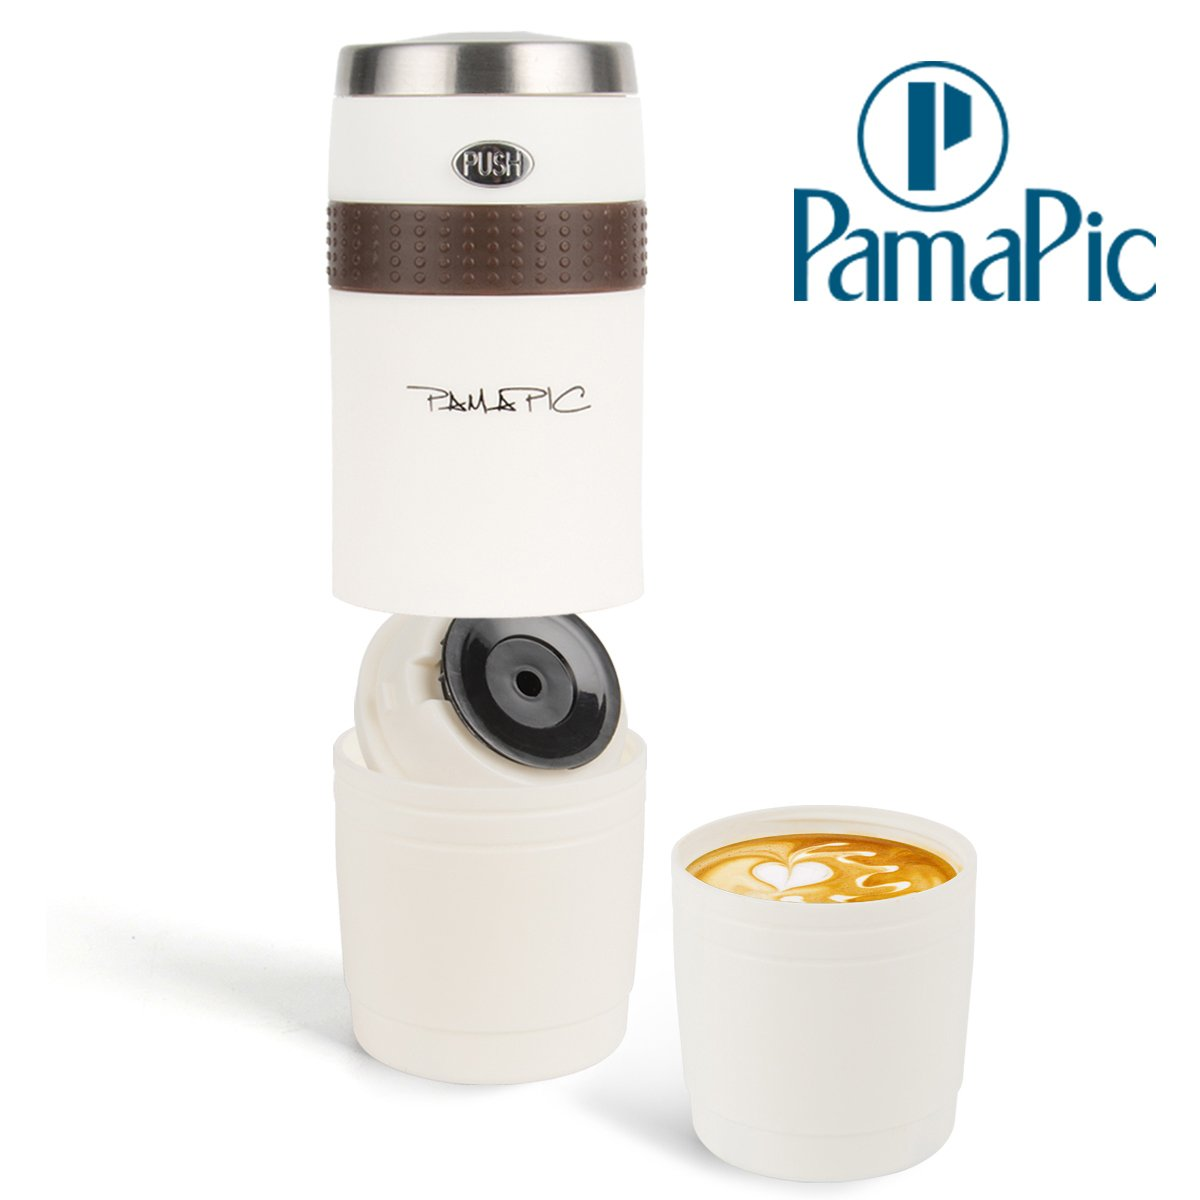 Pamapic Portable Coffee Maker, Mini Electric Espresso Machine with Reusable K-cup Coffee Filter (Ground Coffee & Capsule Compatible), Quick Coffee Machine for Travel, Home, Office 【150ML, Ivory White】 by Pamapic (Image #1)